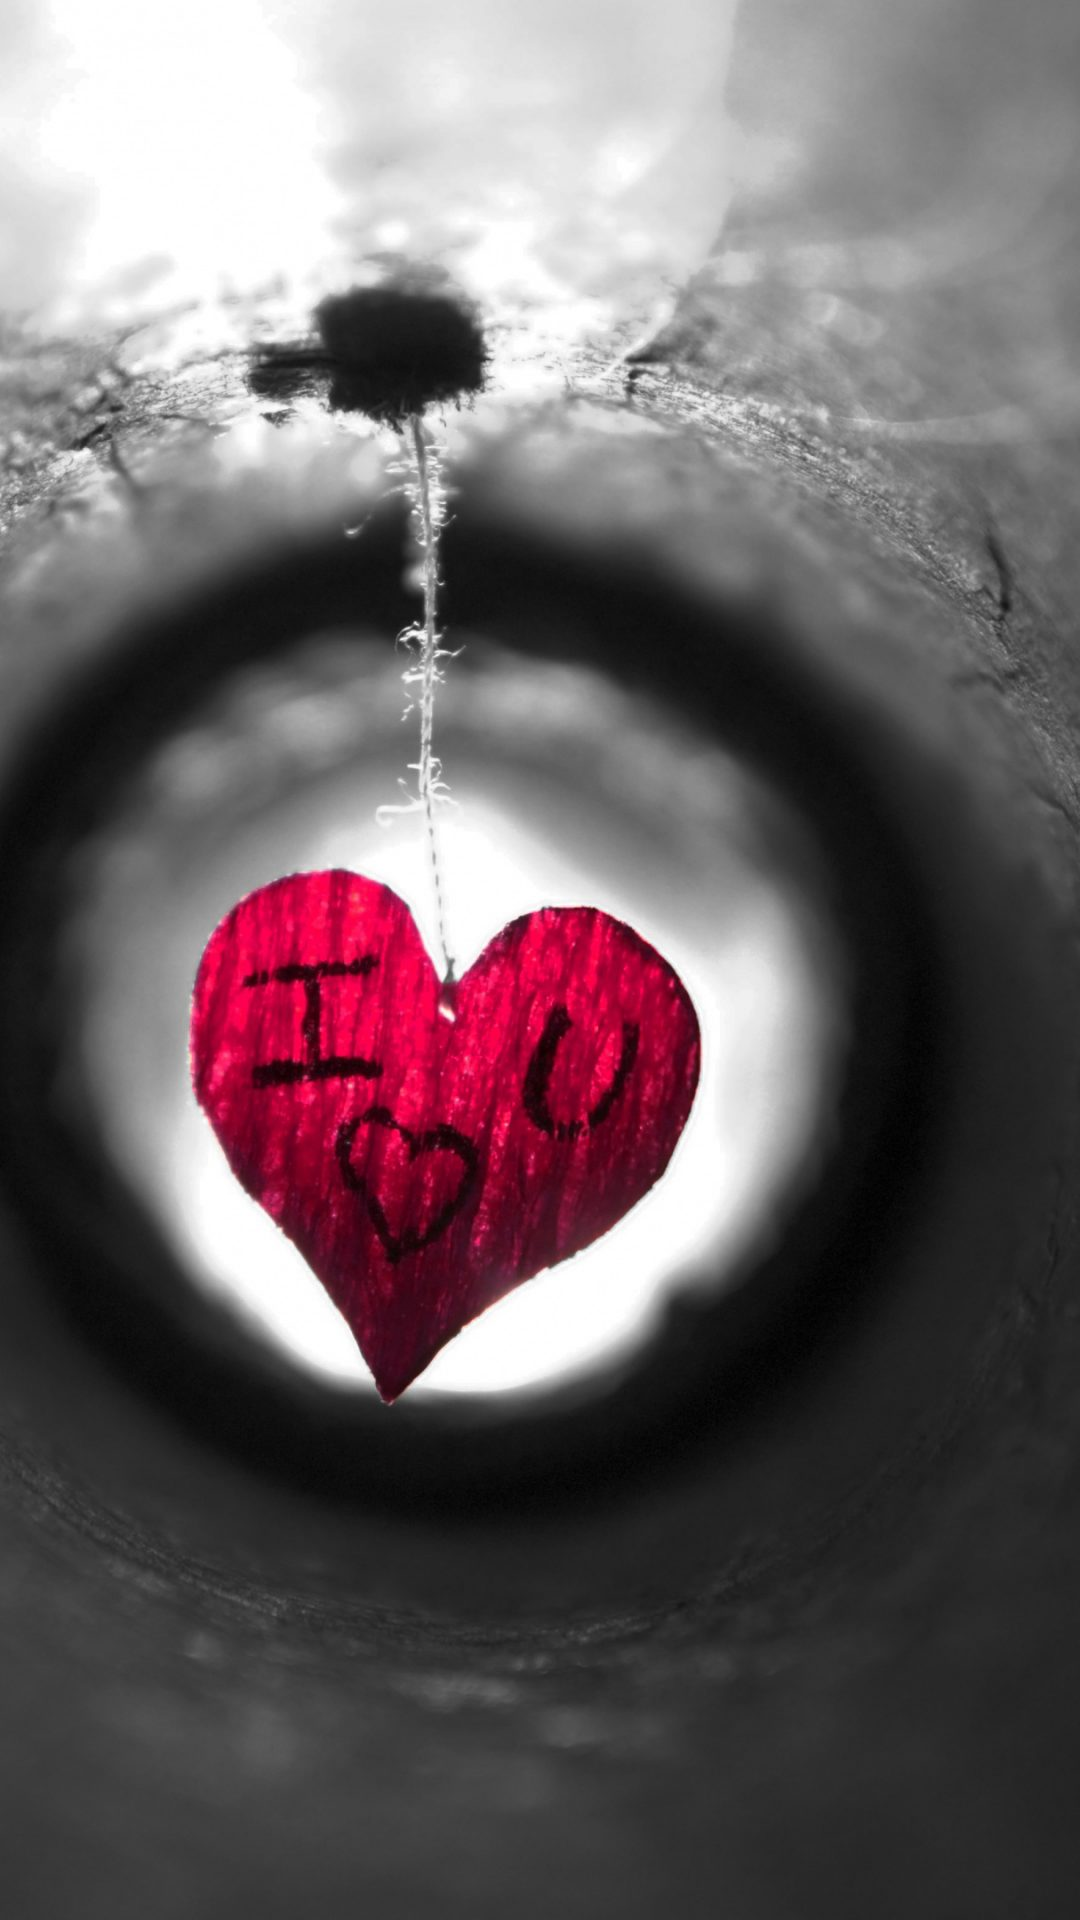 Red Heart I Love You 4K Wallpaper - Best Wallpapers